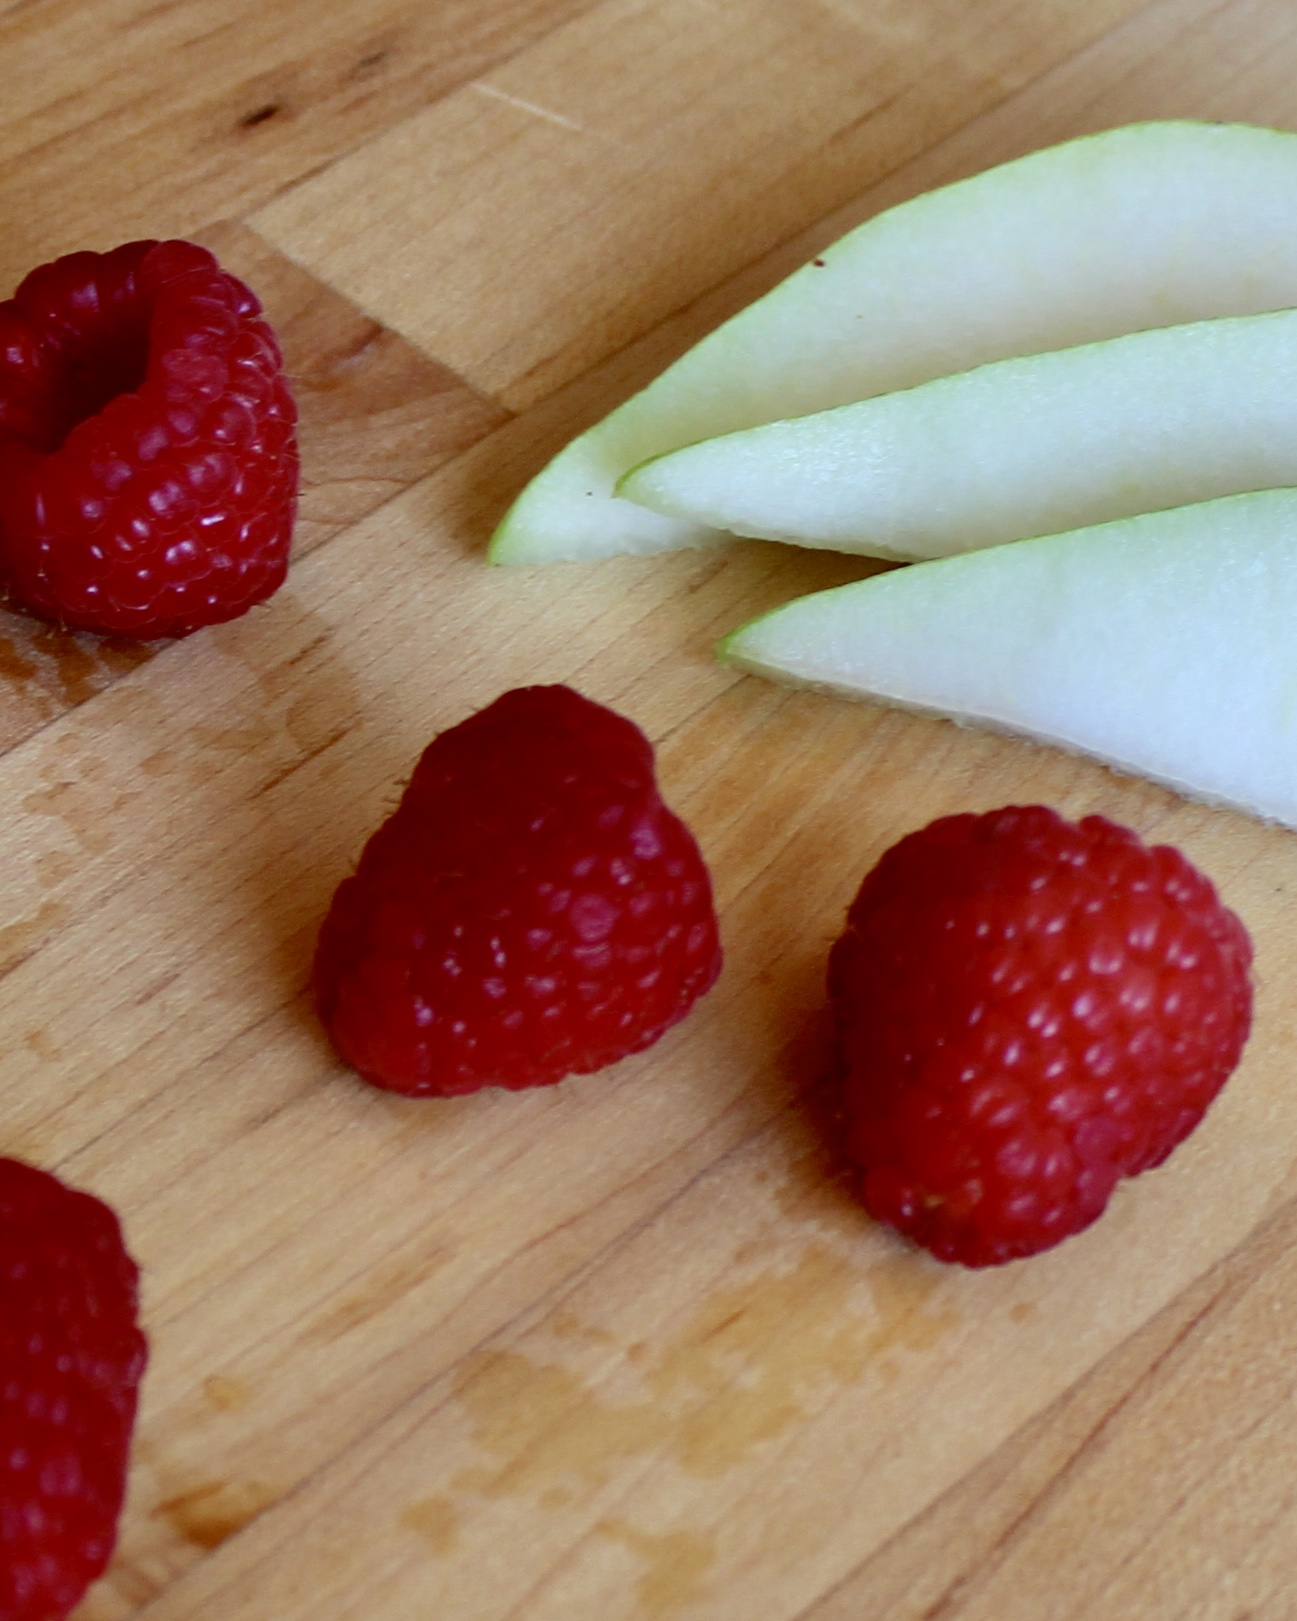 Pear & Raspberry Puree makes a flavorful baby food and is high in fiber, vitamin